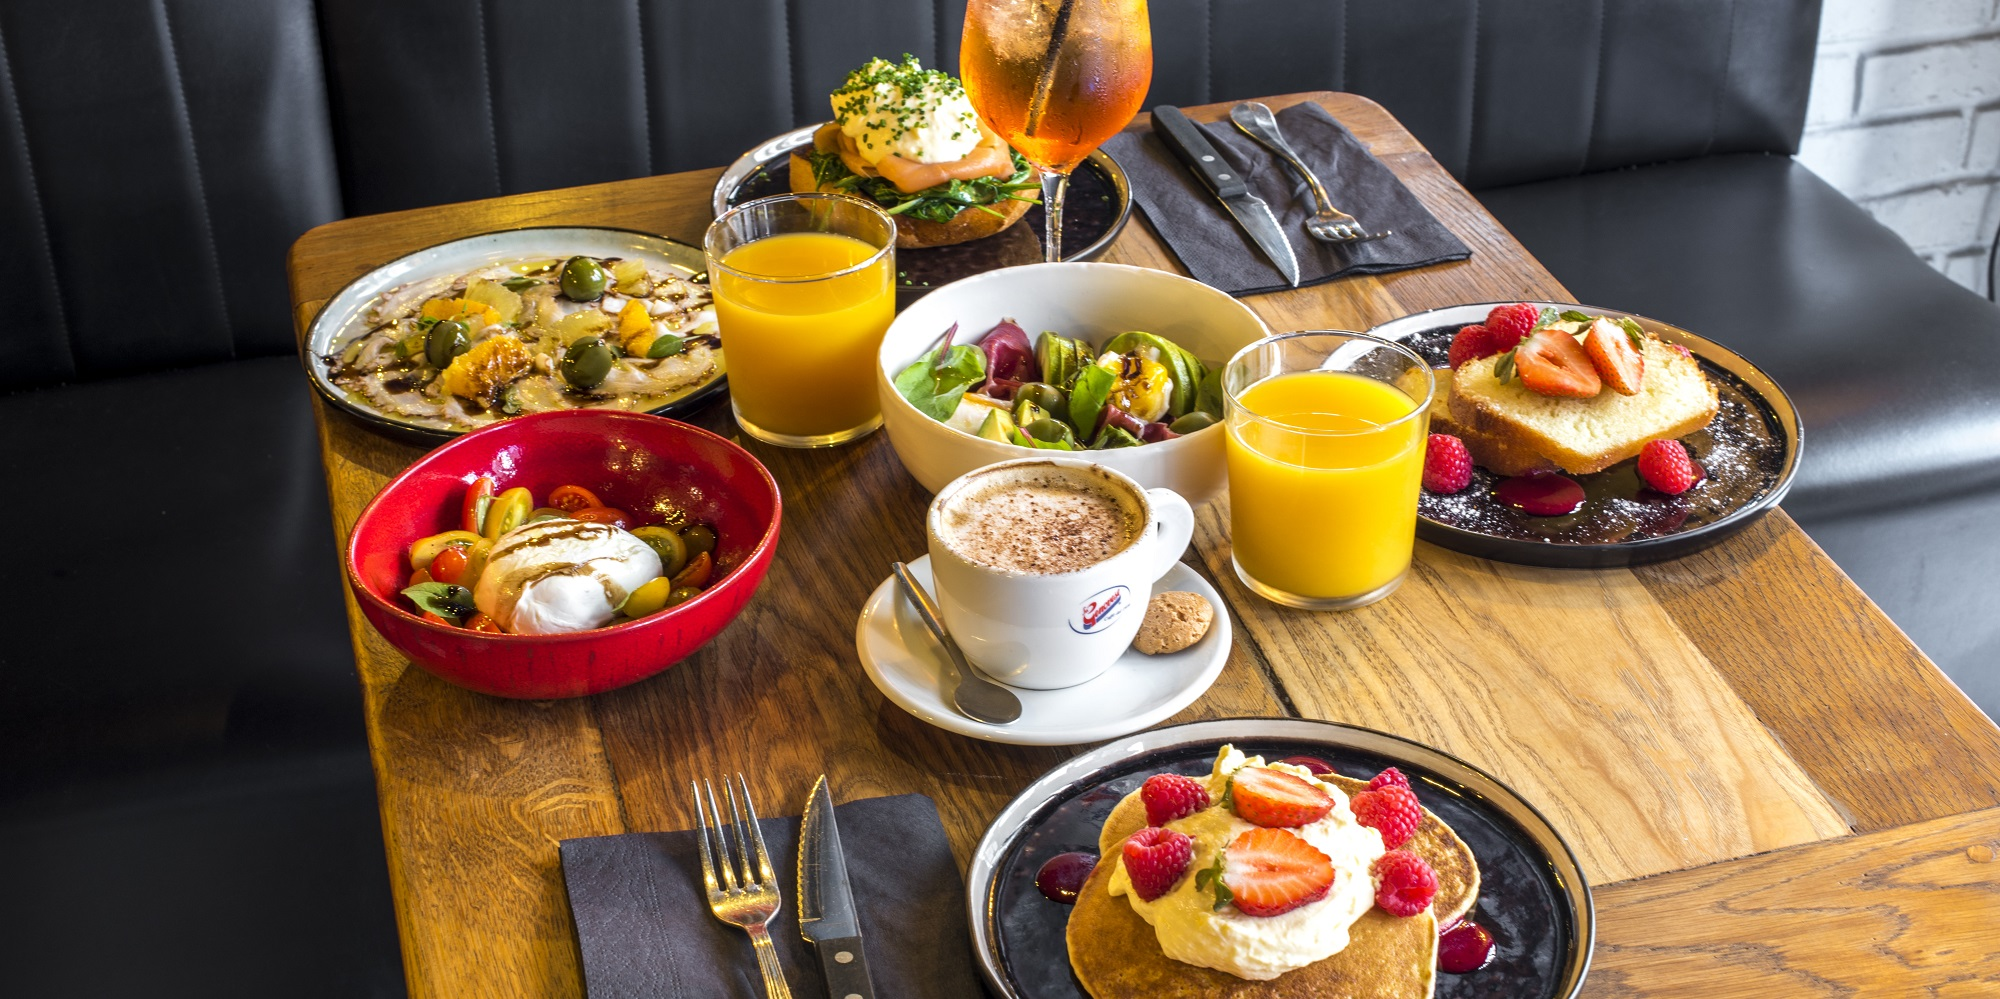 Brunch Alimento (75005 Paris)